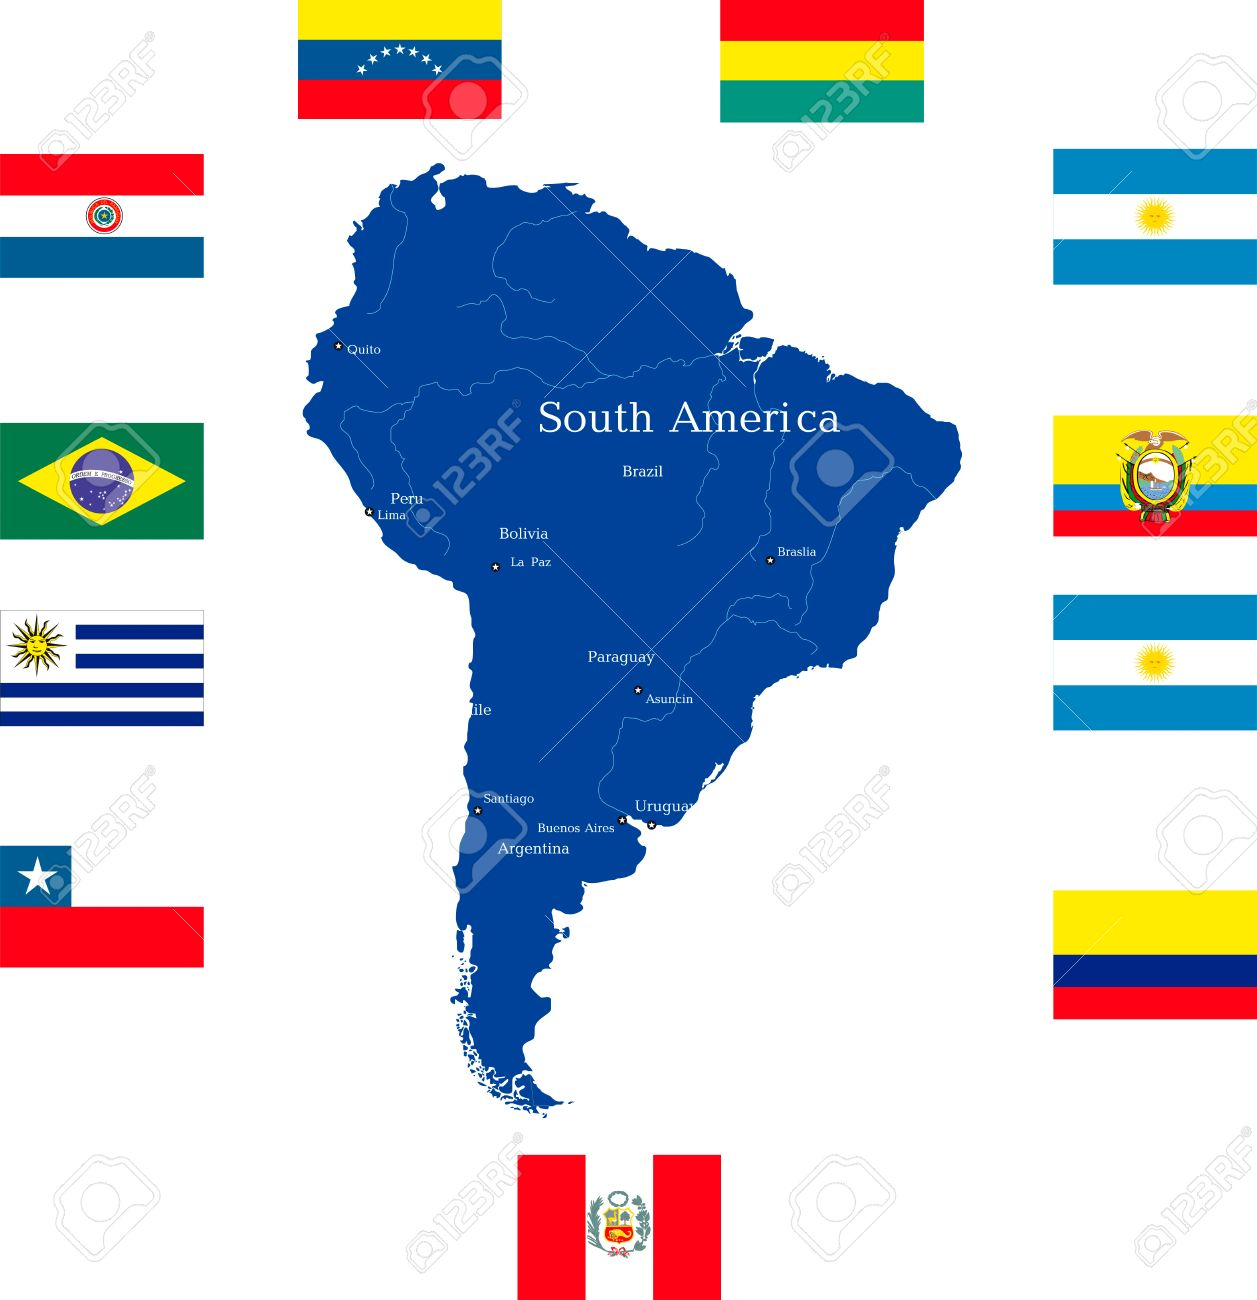 Abstract Map Of South America Continent With Countries Flags - South america map and flags